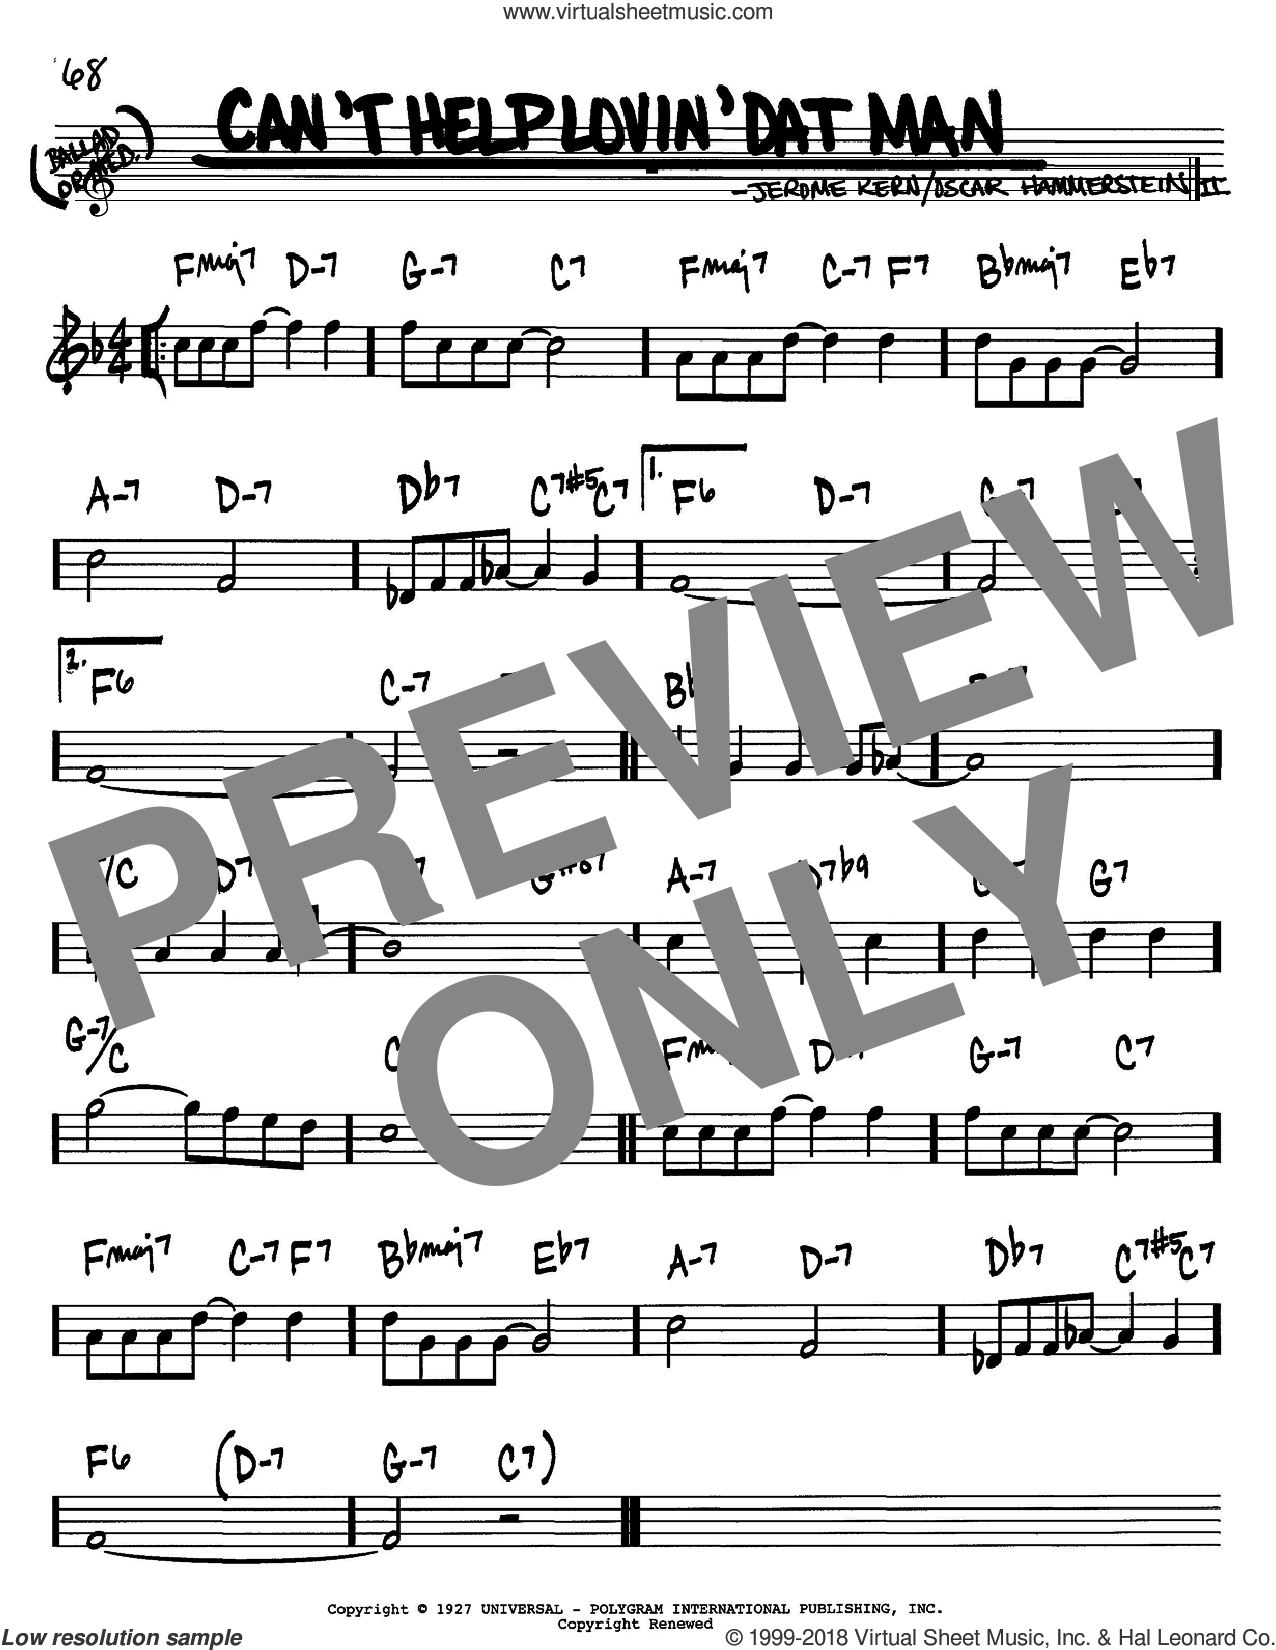 Can't Help Lovin' Dat Man sheet music for voice and other instruments (Bb) by Jerome Kern and Oscar II Hammerstein. Score Image Preview.